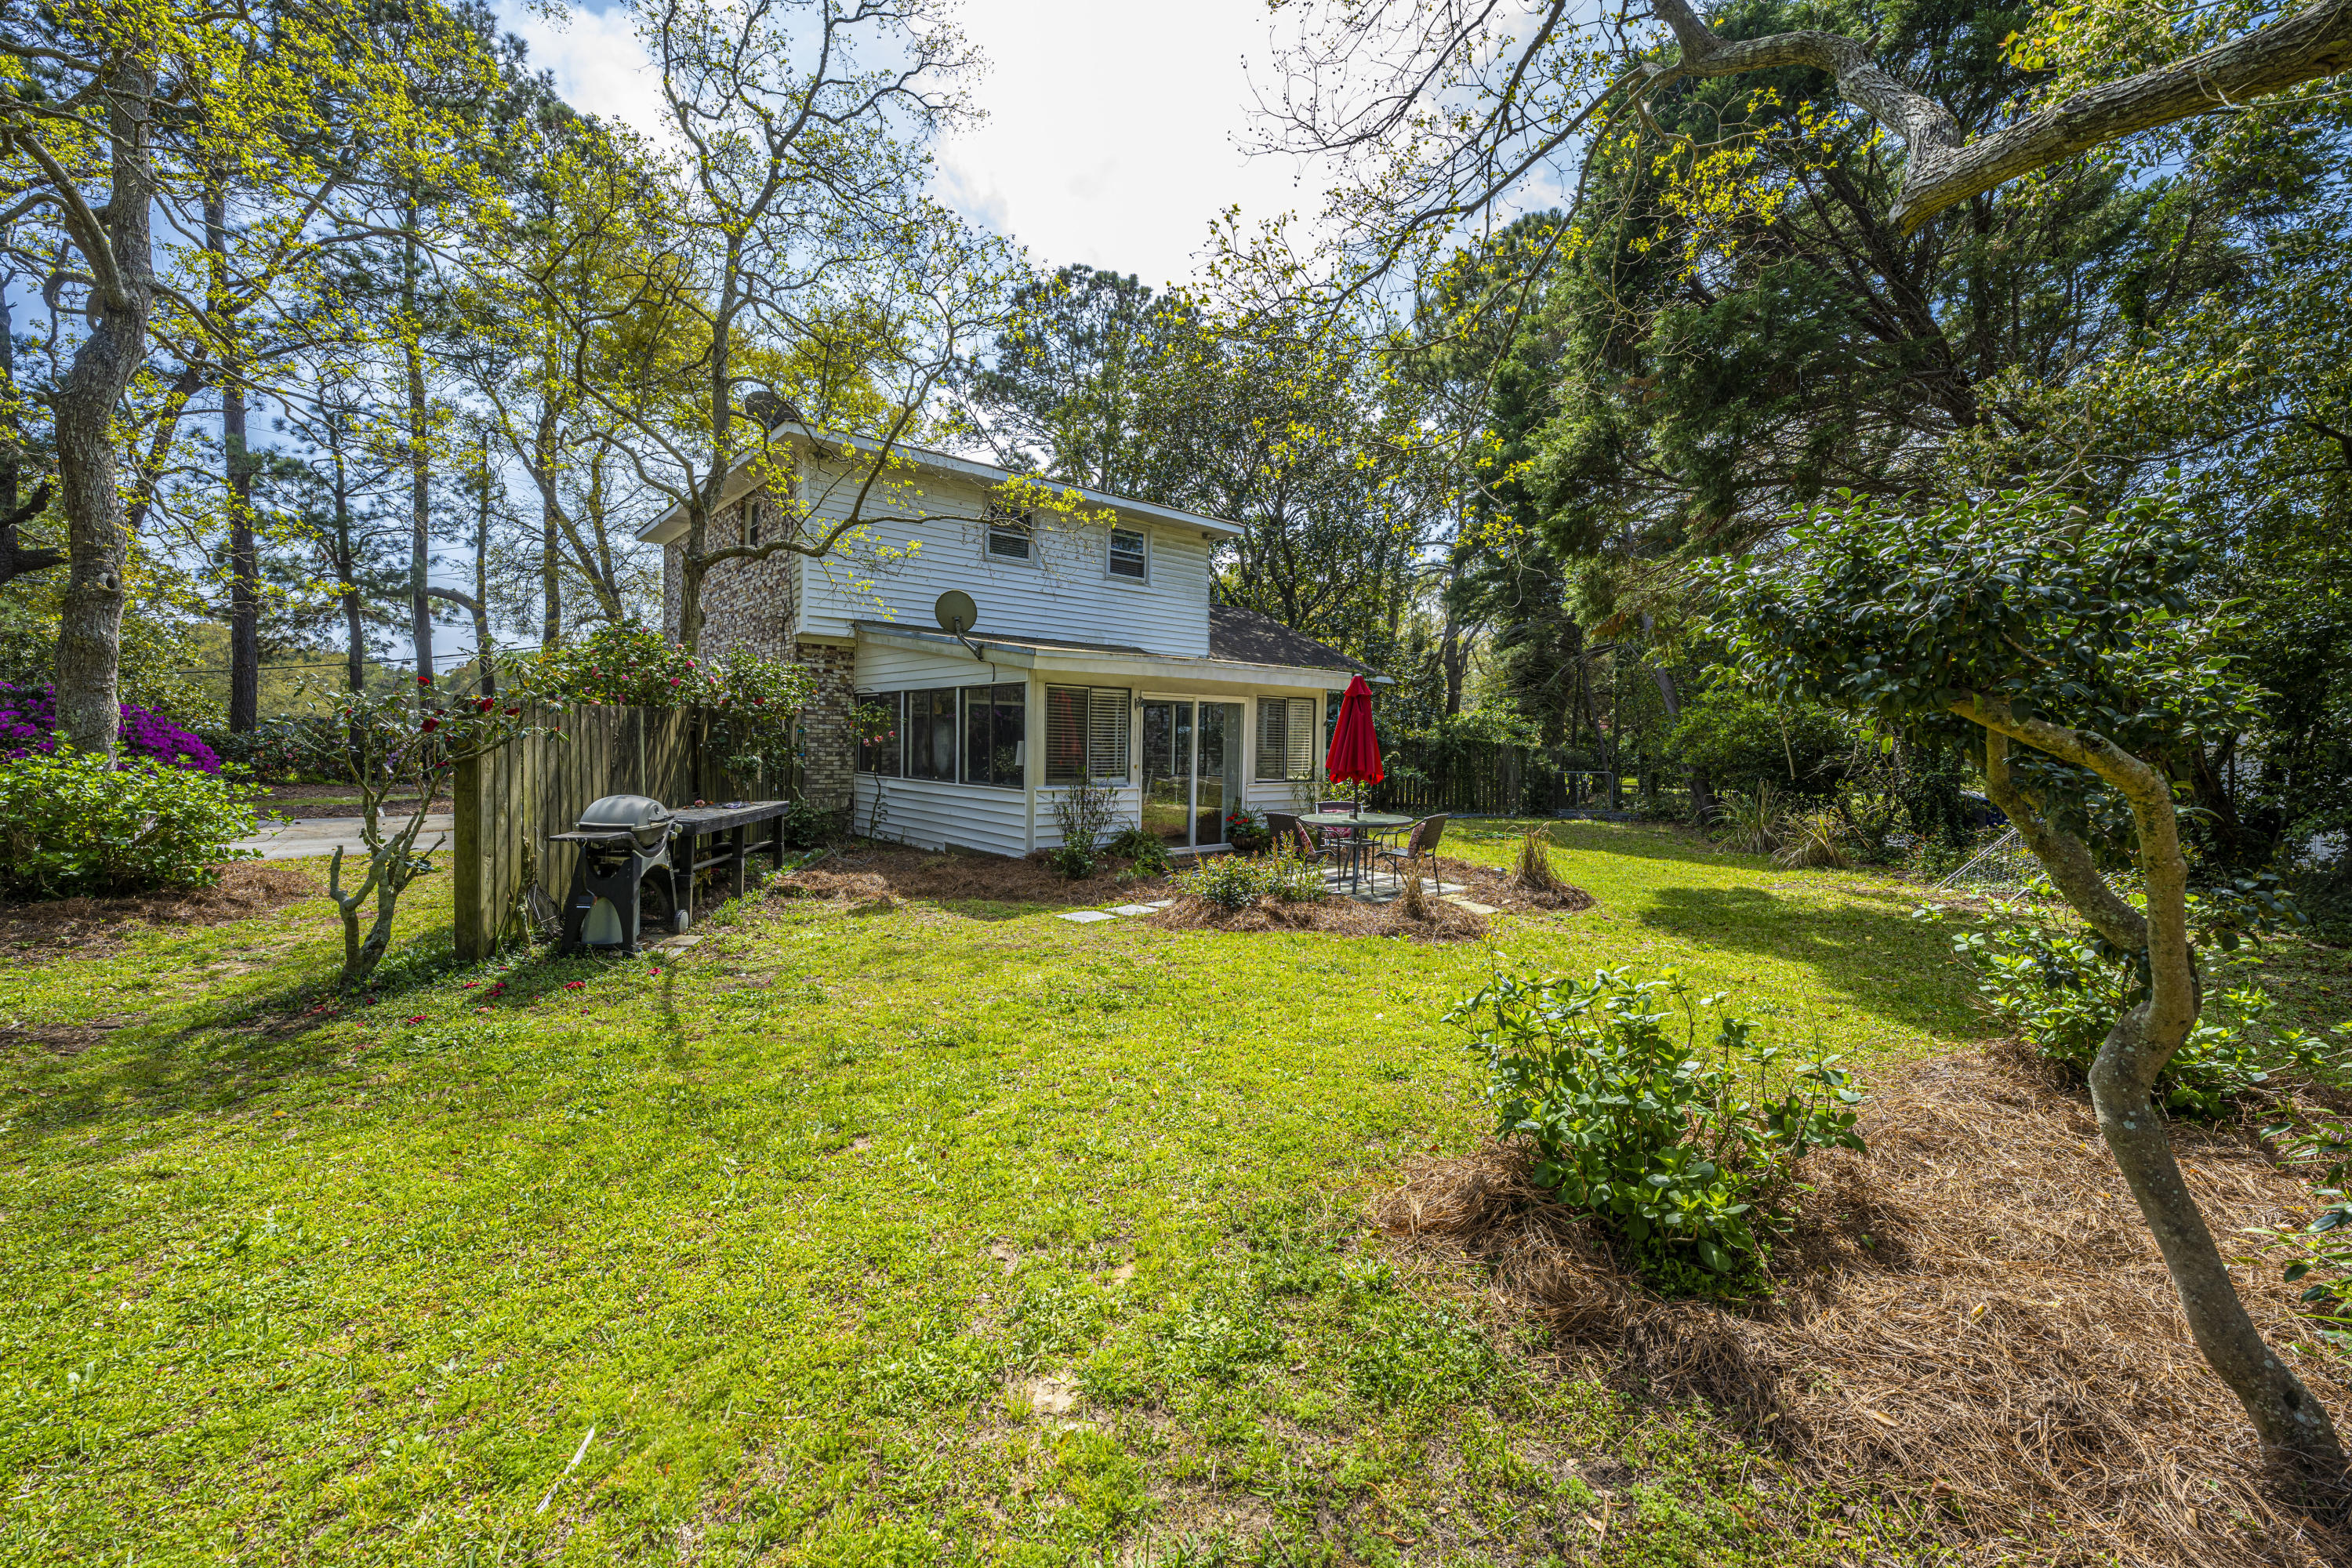 Stiles Point Homes For Sale - 775 Sparrow, Charleston, SC - 37